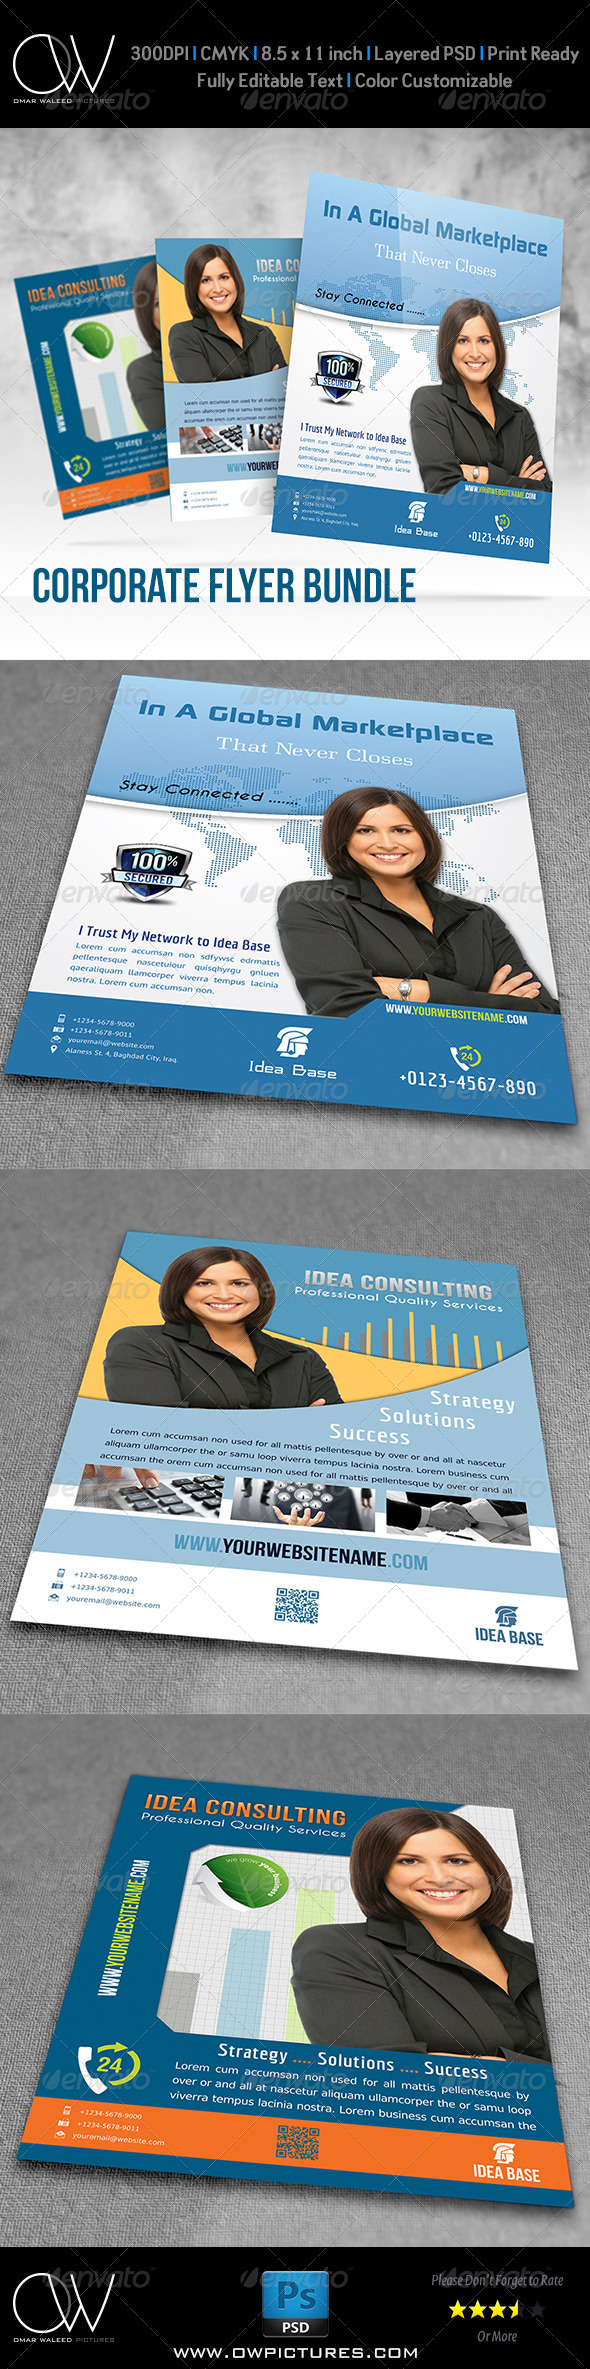 GraphicRiver Corporate Flyer Bundle Template Vol.2 7658611